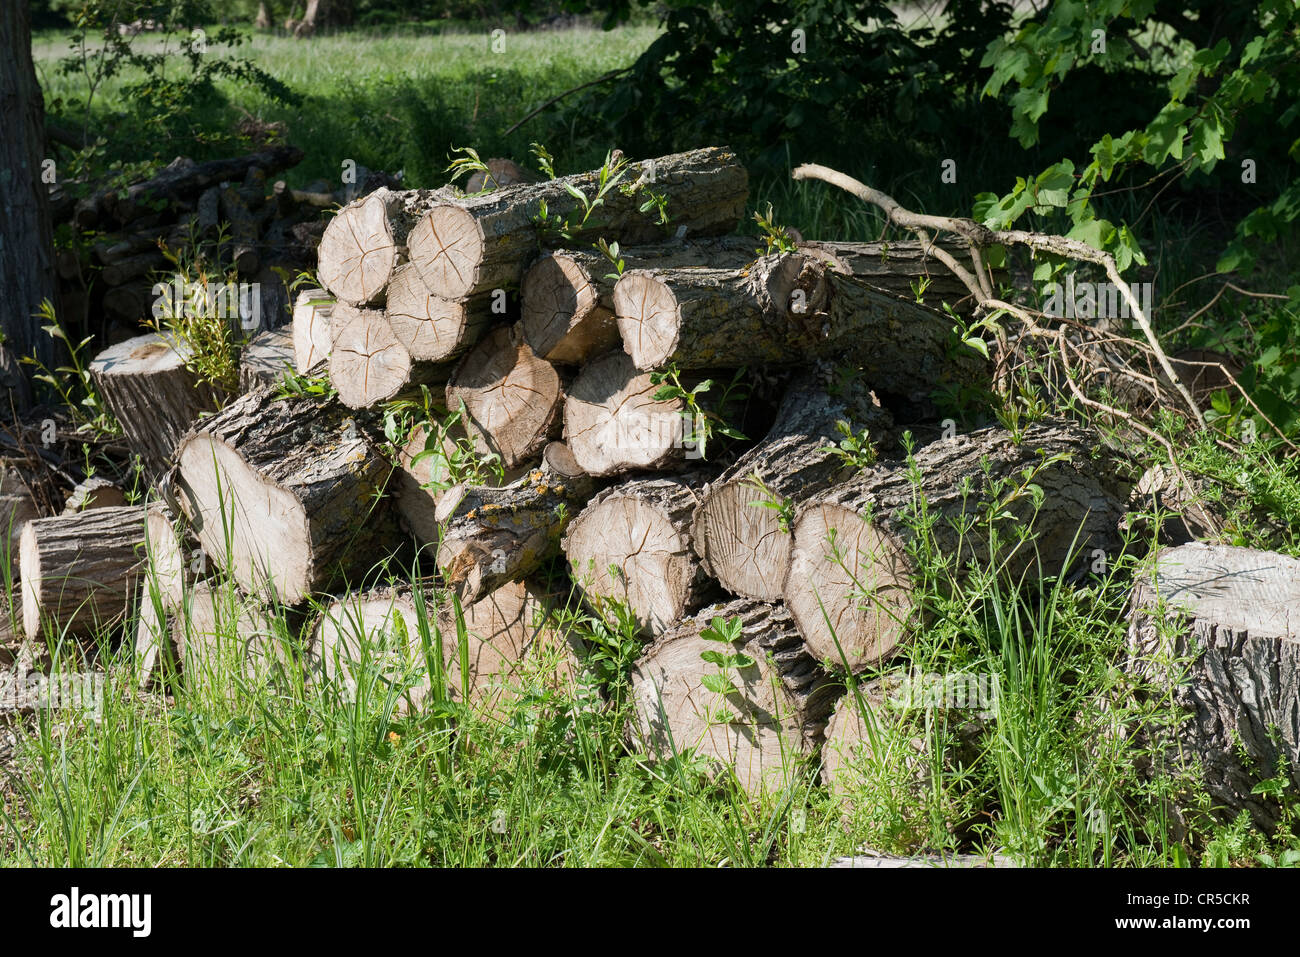 Pile of Logs beside The River Thames at Goring -1 - Stock Image